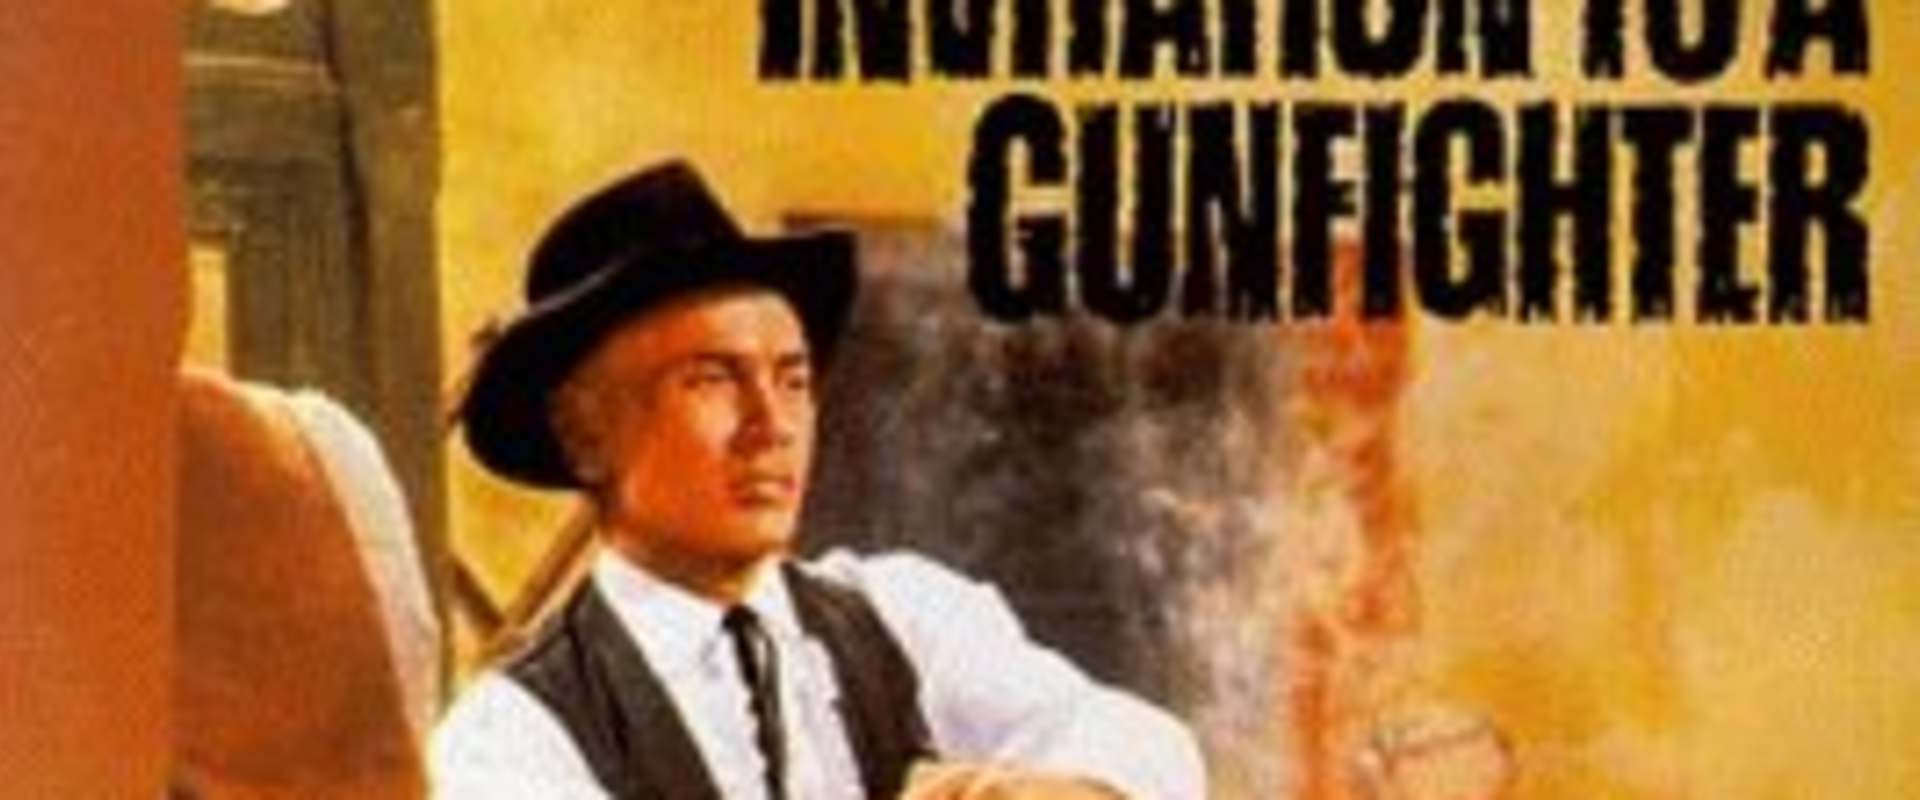 Invitation to a Gunfighter background 2